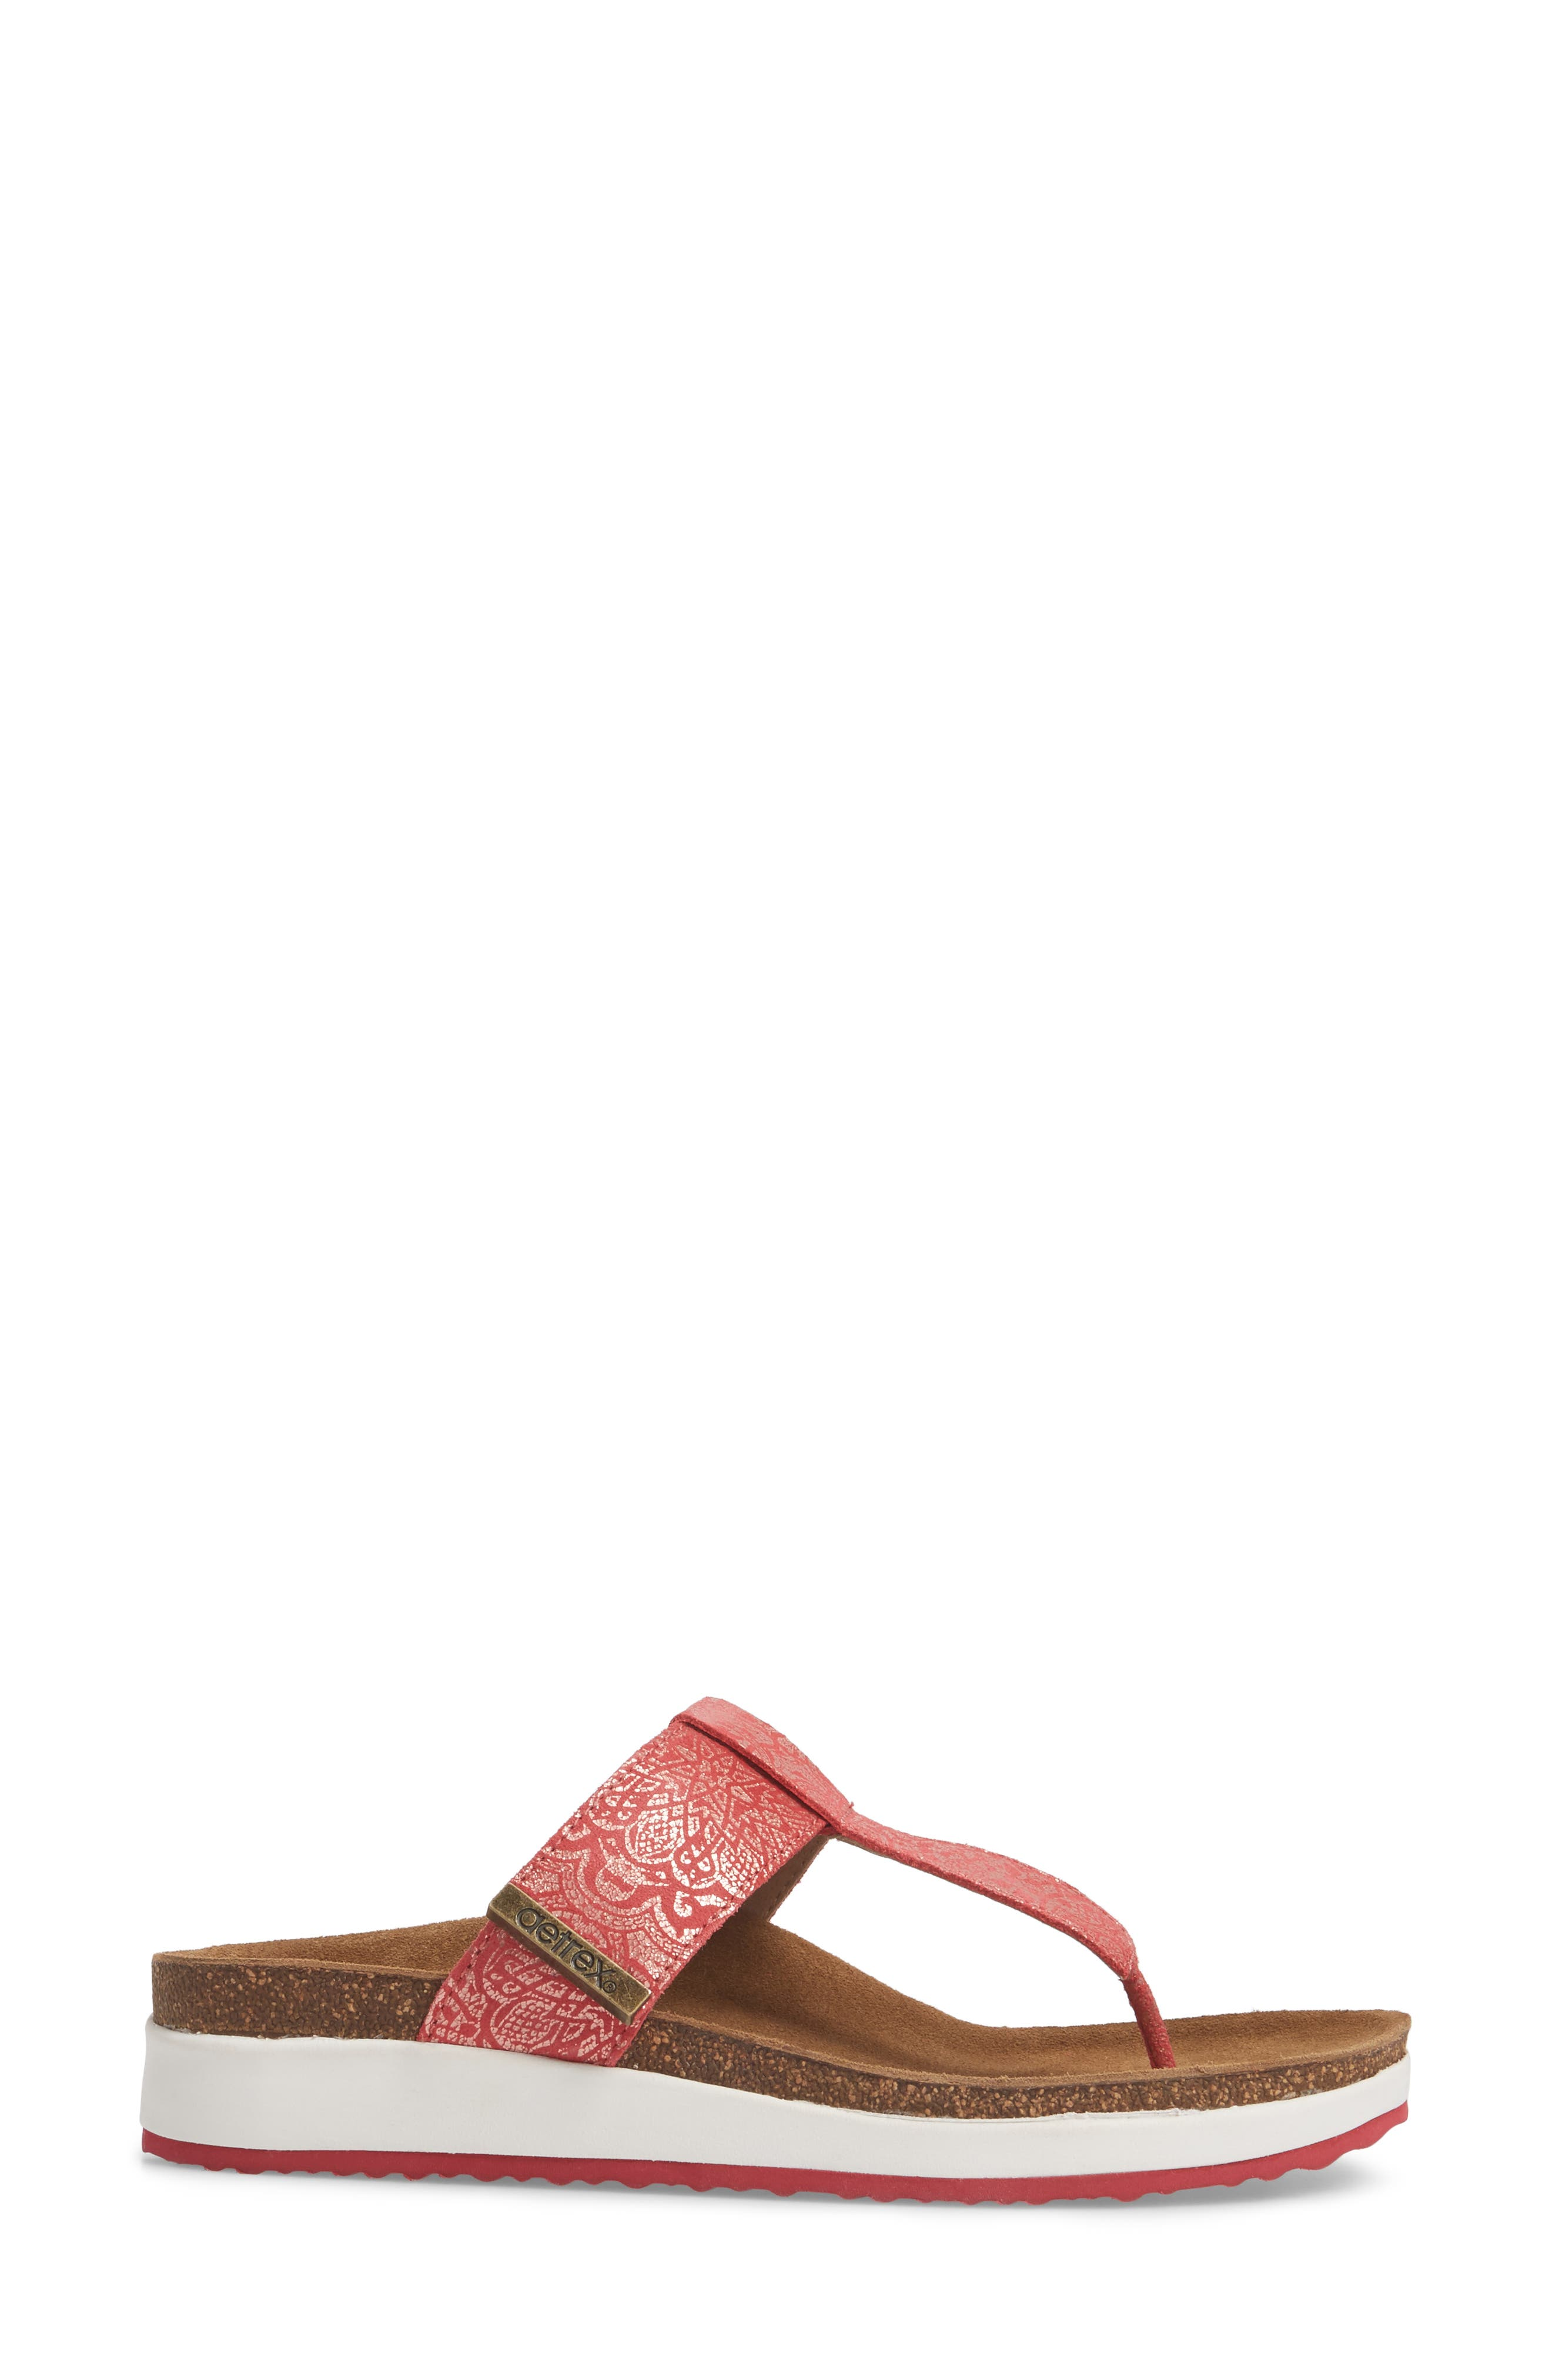 Phoebe Sandal,                             Alternate thumbnail 3, color,                             Red Metallic Leather